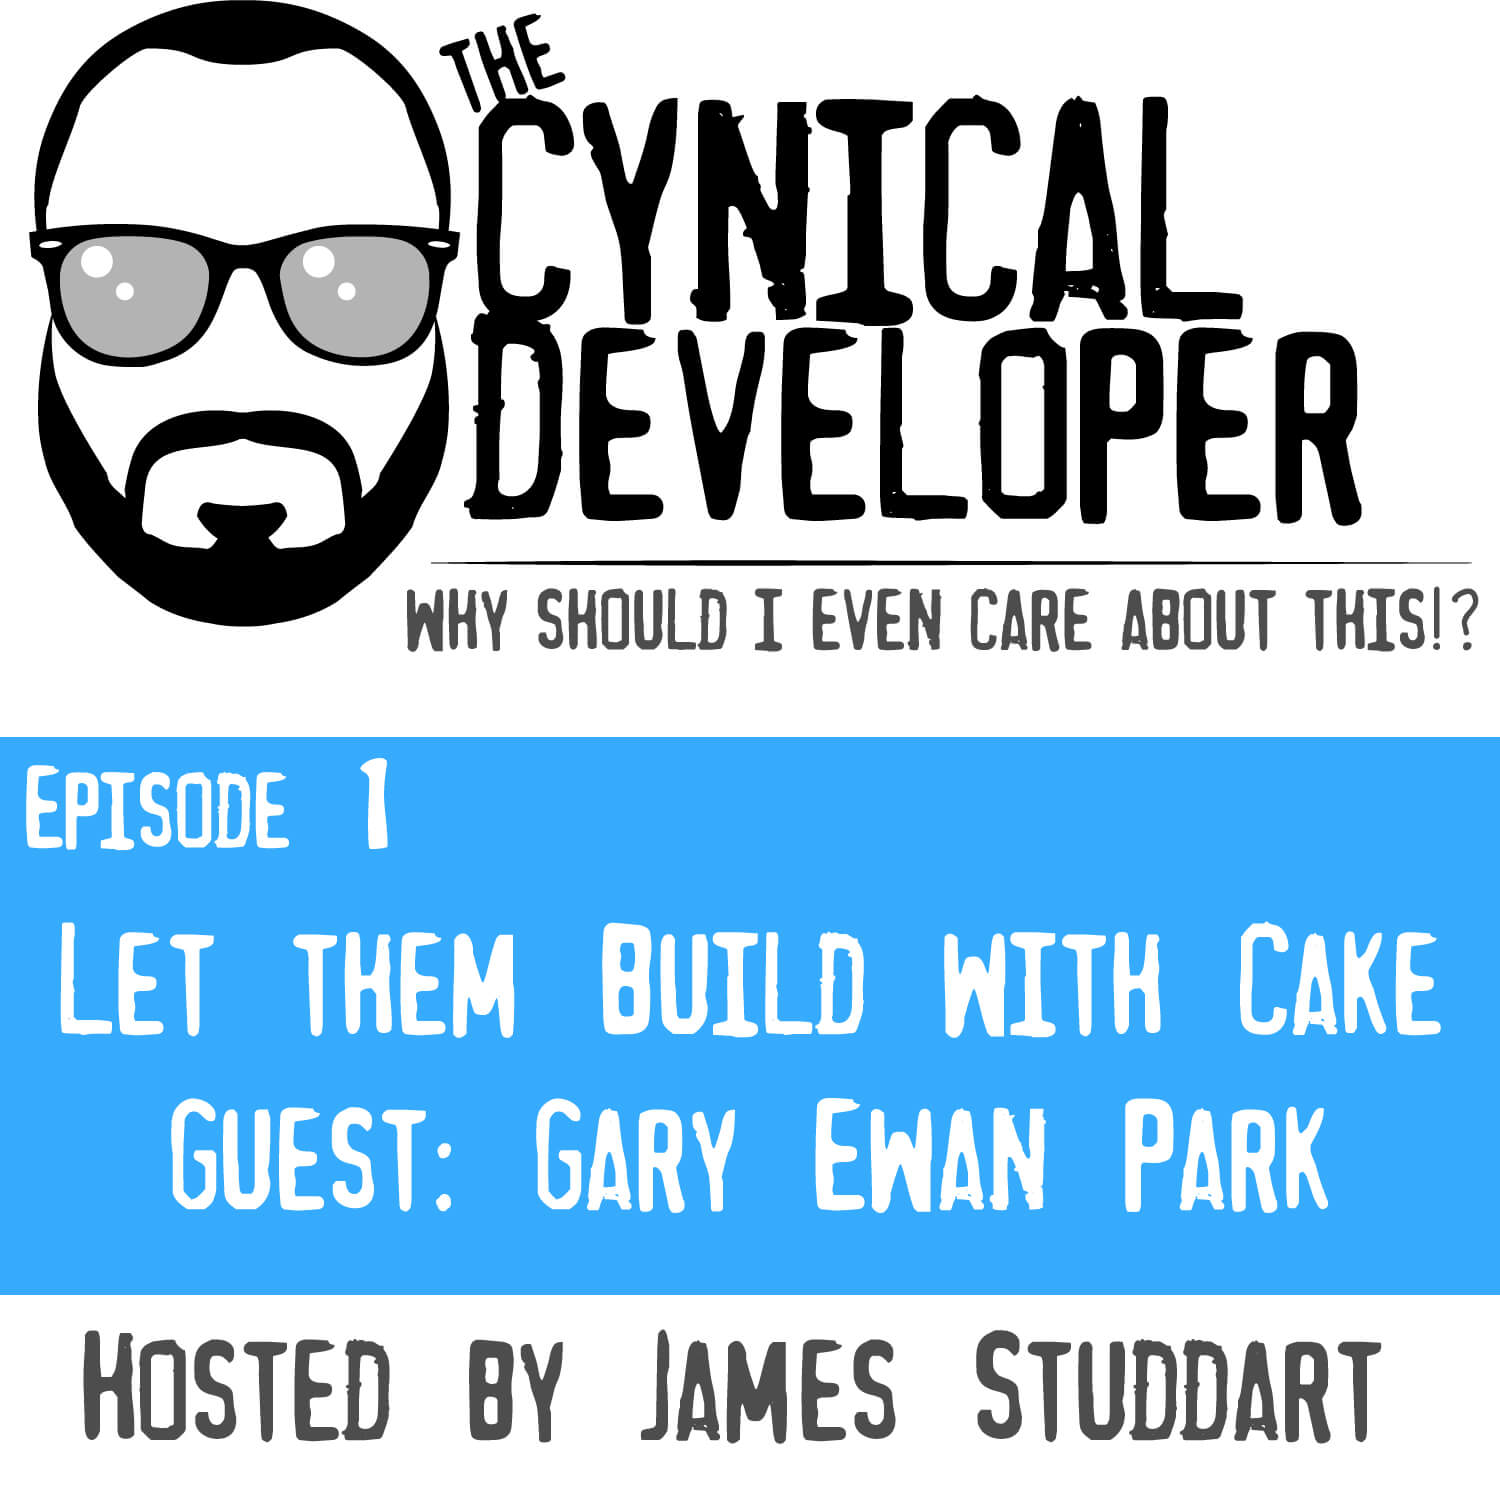 Episode 1 - Let them build with Cake!